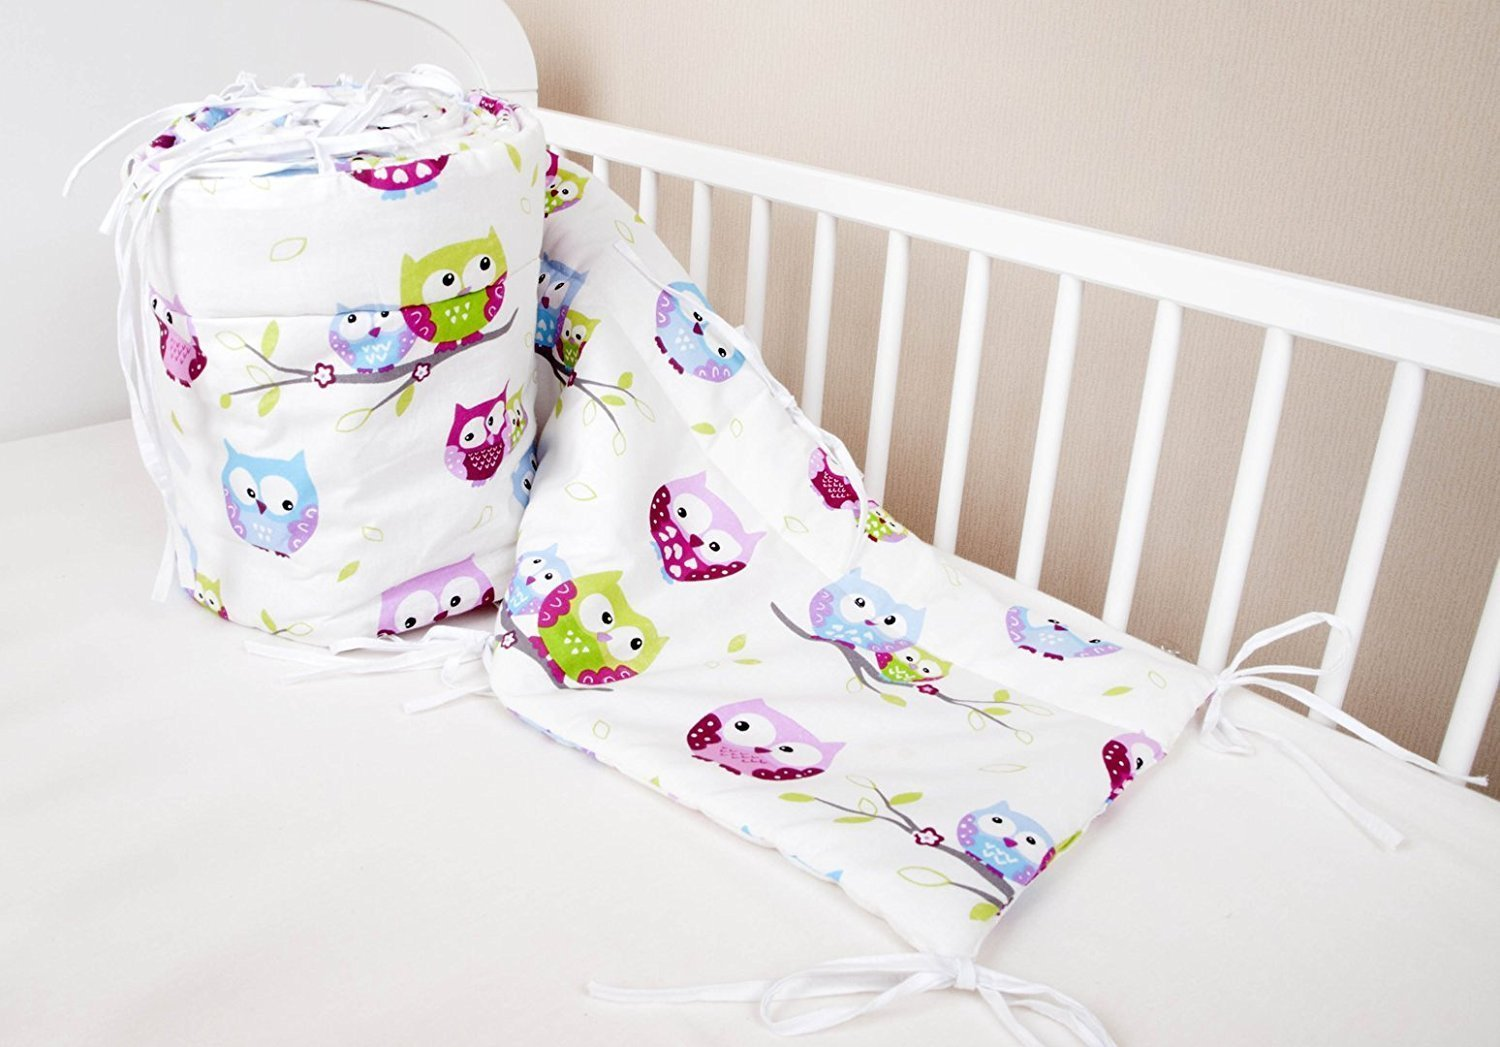 Amilian® Baby Cot Bumper Wrap Around Protection For Baby's Bed With Head Guard 100% hypo-Allergenic 100% Cotton Breathable and non-toxic materials Anti-allergic Baby Owl Print White/Multi-Coloured Available In 3 Sizes (420 cm x 30 cm) (360 cm 30 cm) (180 c